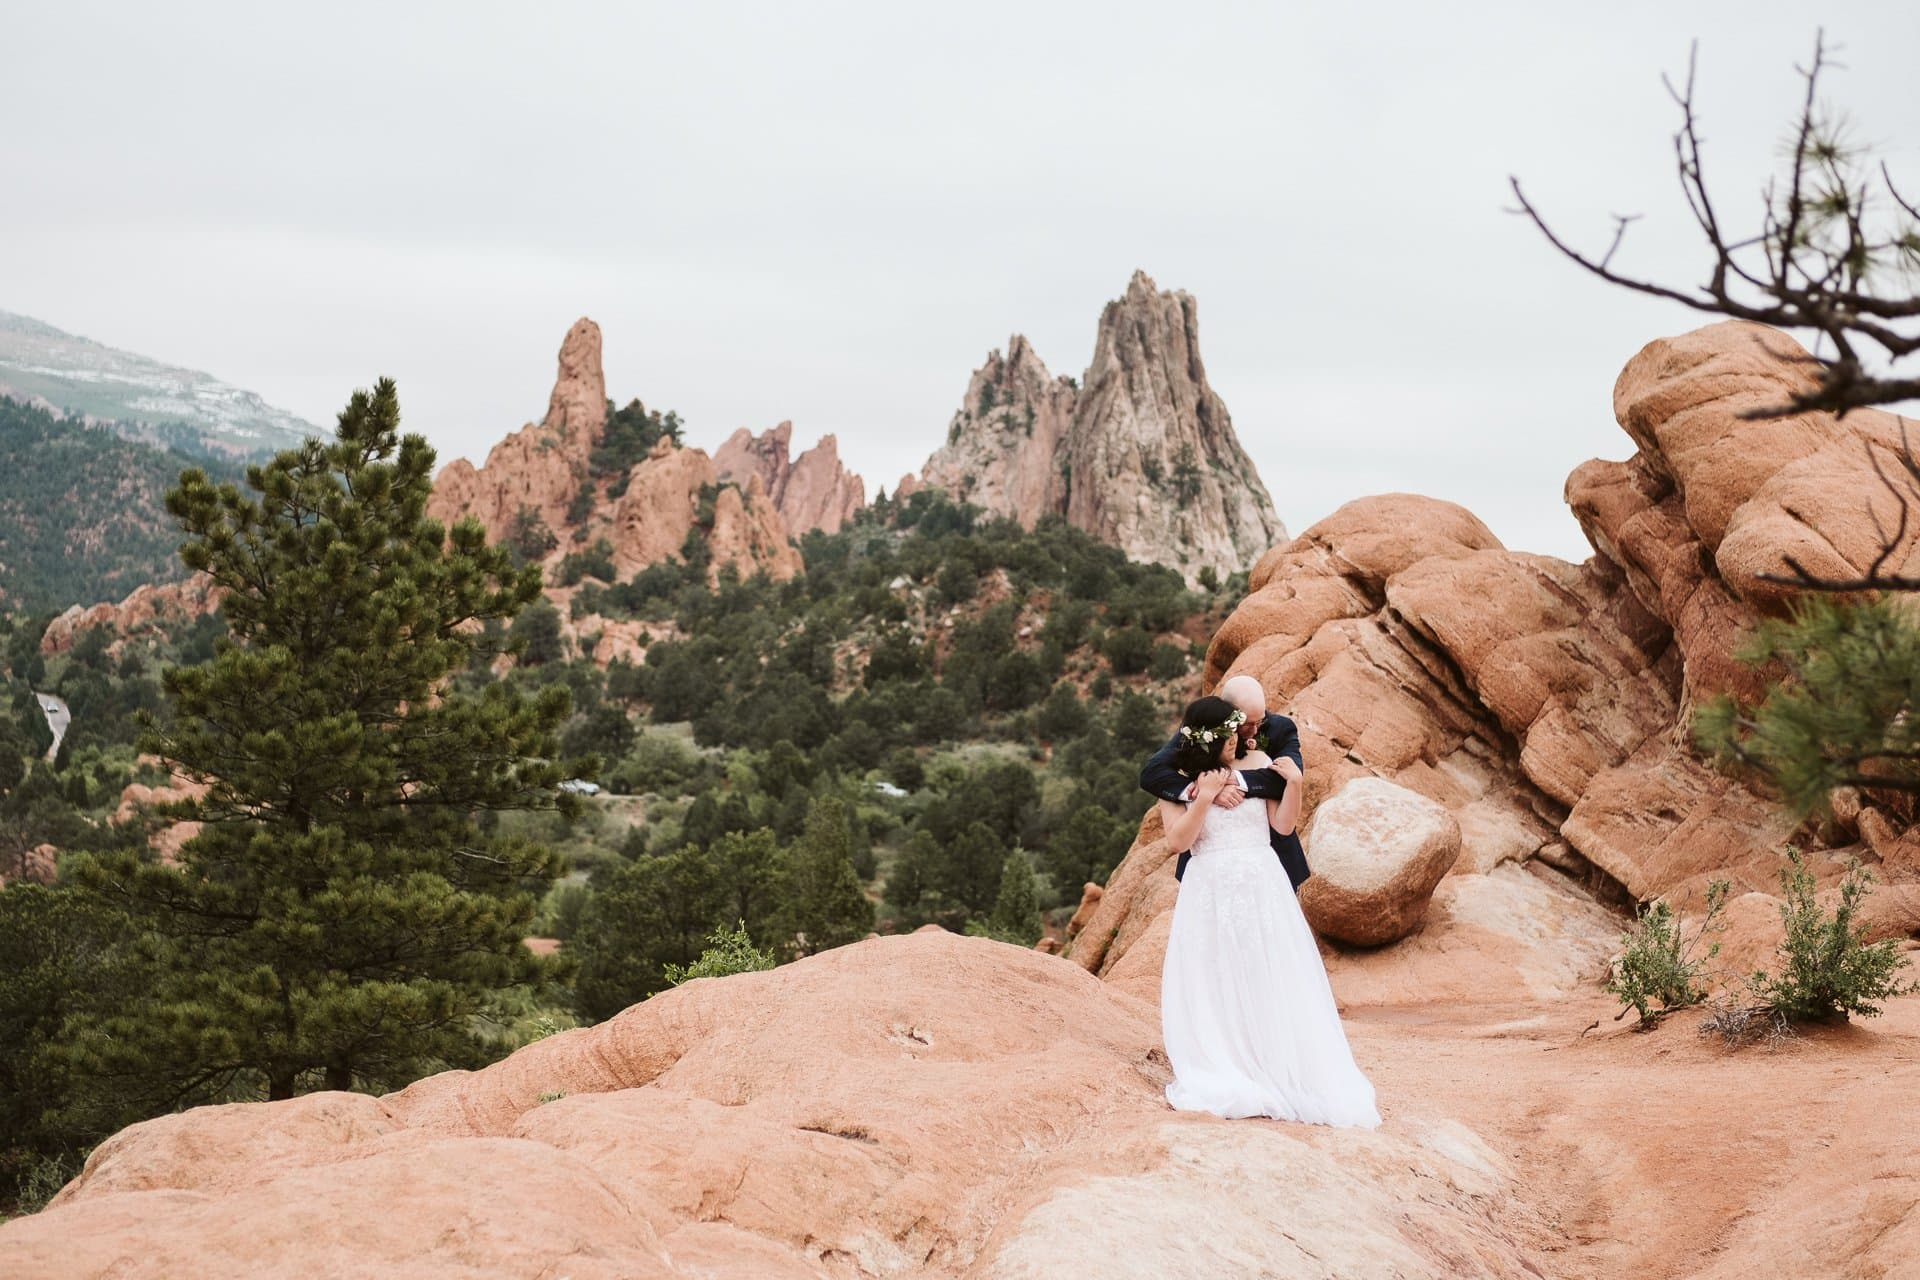 Wedding photos at Garden of the Gods in Colorado Springs with red rocks and desert vibes